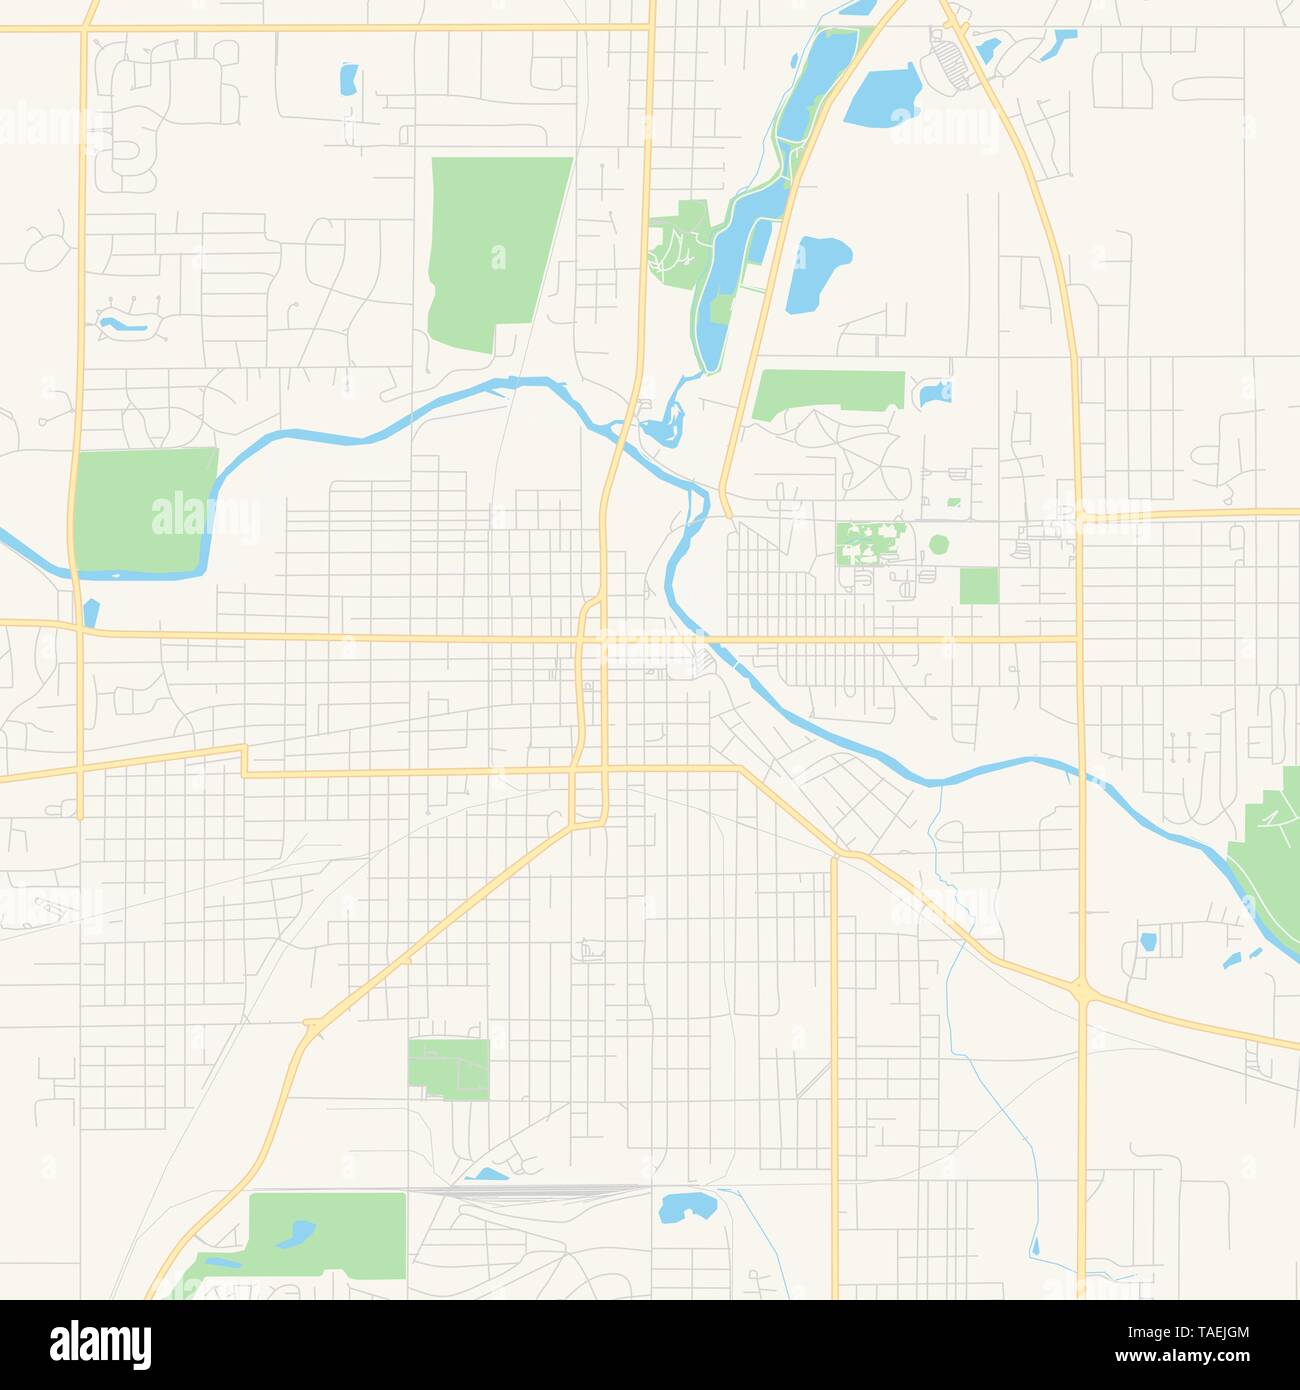 Empty vector map of Anderson, Indiana, USA, printable road map ... on texas in indiana, usa map in new jersey, transportation in indiana, usa map in miami, zip code map in indiana, butterflies in indiana, dinosaurs in indiana, animals in indiana, weather in indiana, home in indiana, star in indiana,